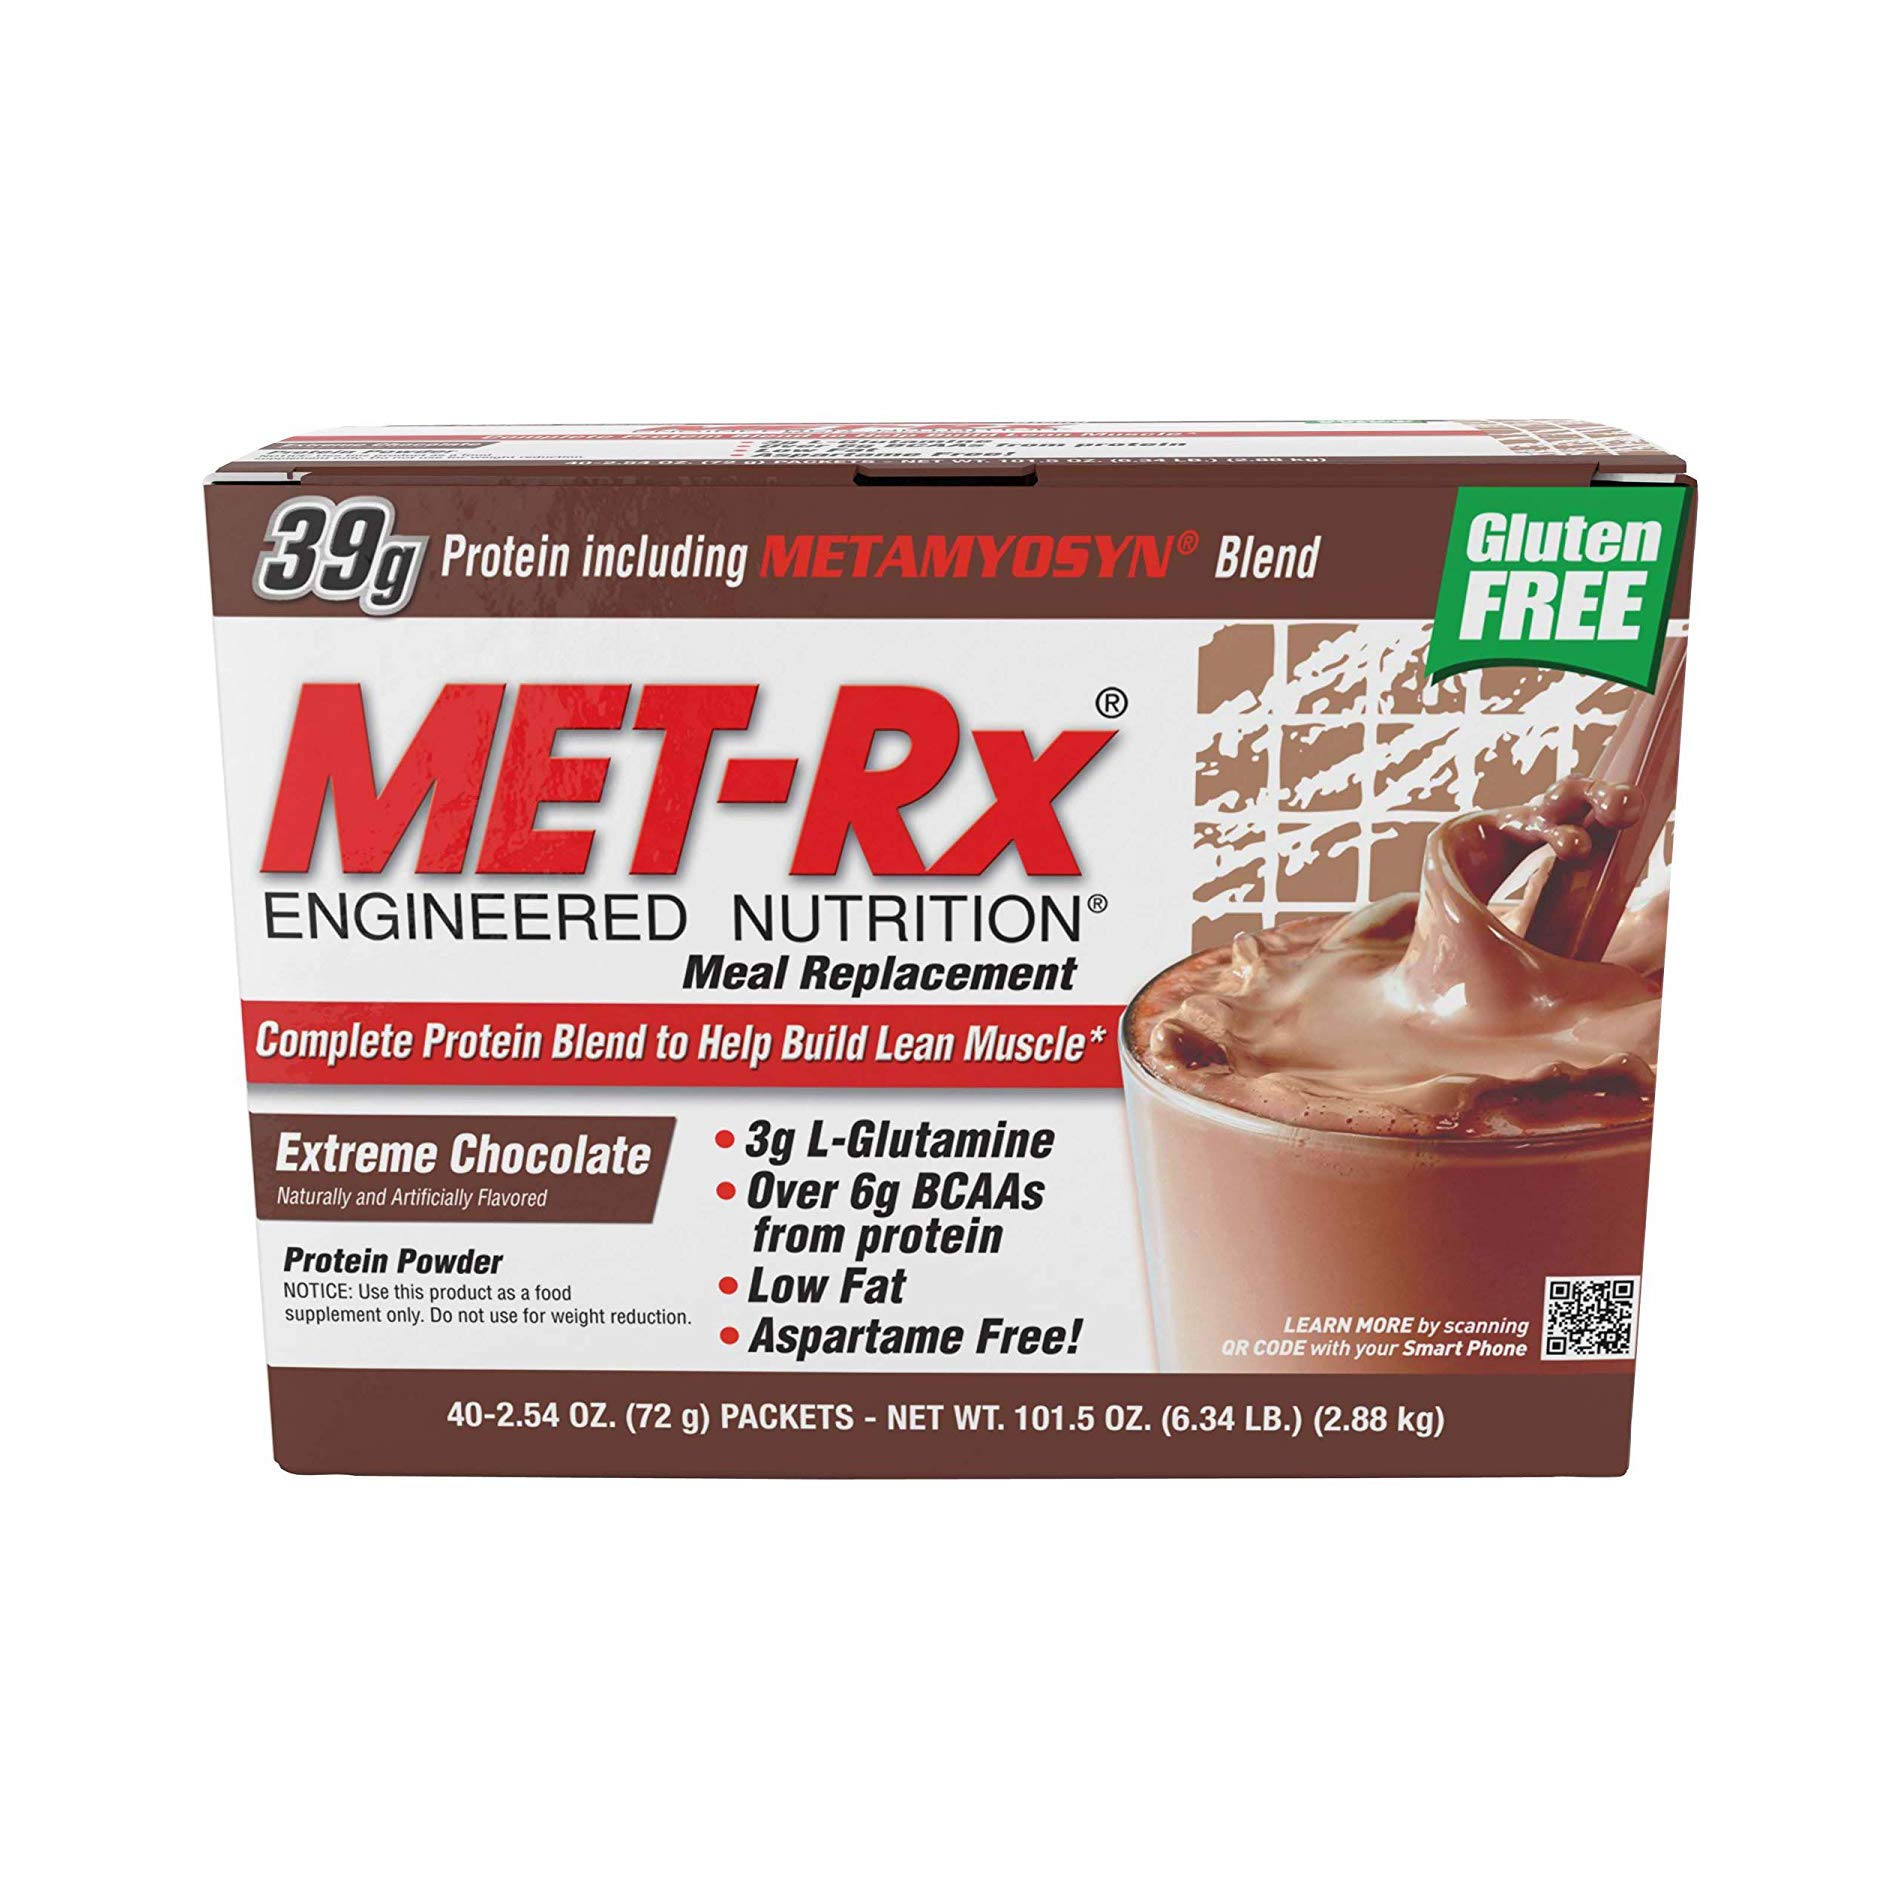 MET-Rx Original Whey Protein Powder, Great for Meal Replacement Shakes, Low Carb, Gluten Free, Extreme Chocolate, 2.54 oz. Packets, 40 Count by MET-Rx